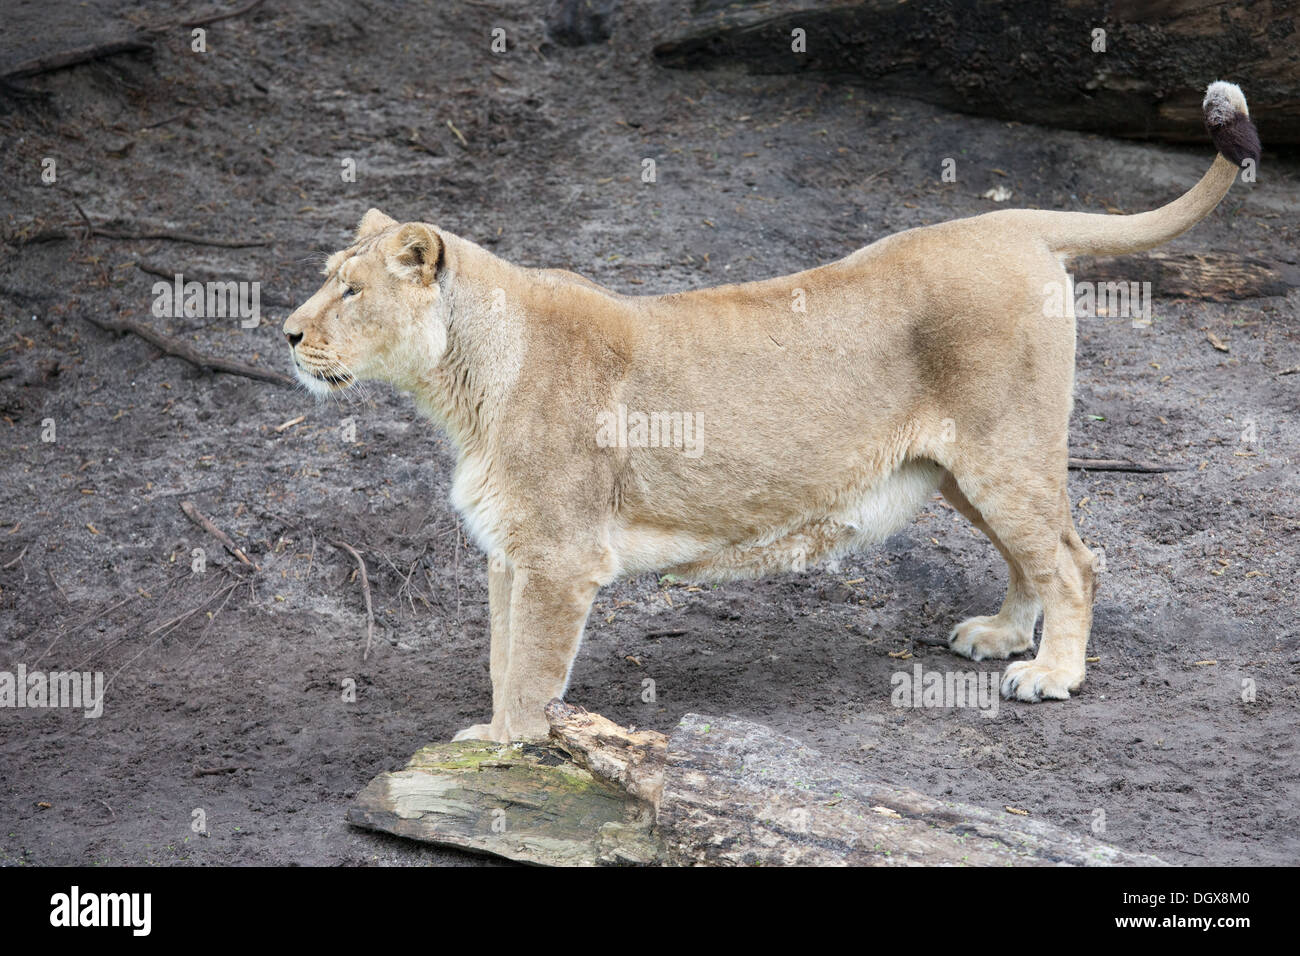 Female lion (Panthera leo) standing on the ground, looking for prey. Stock Photo